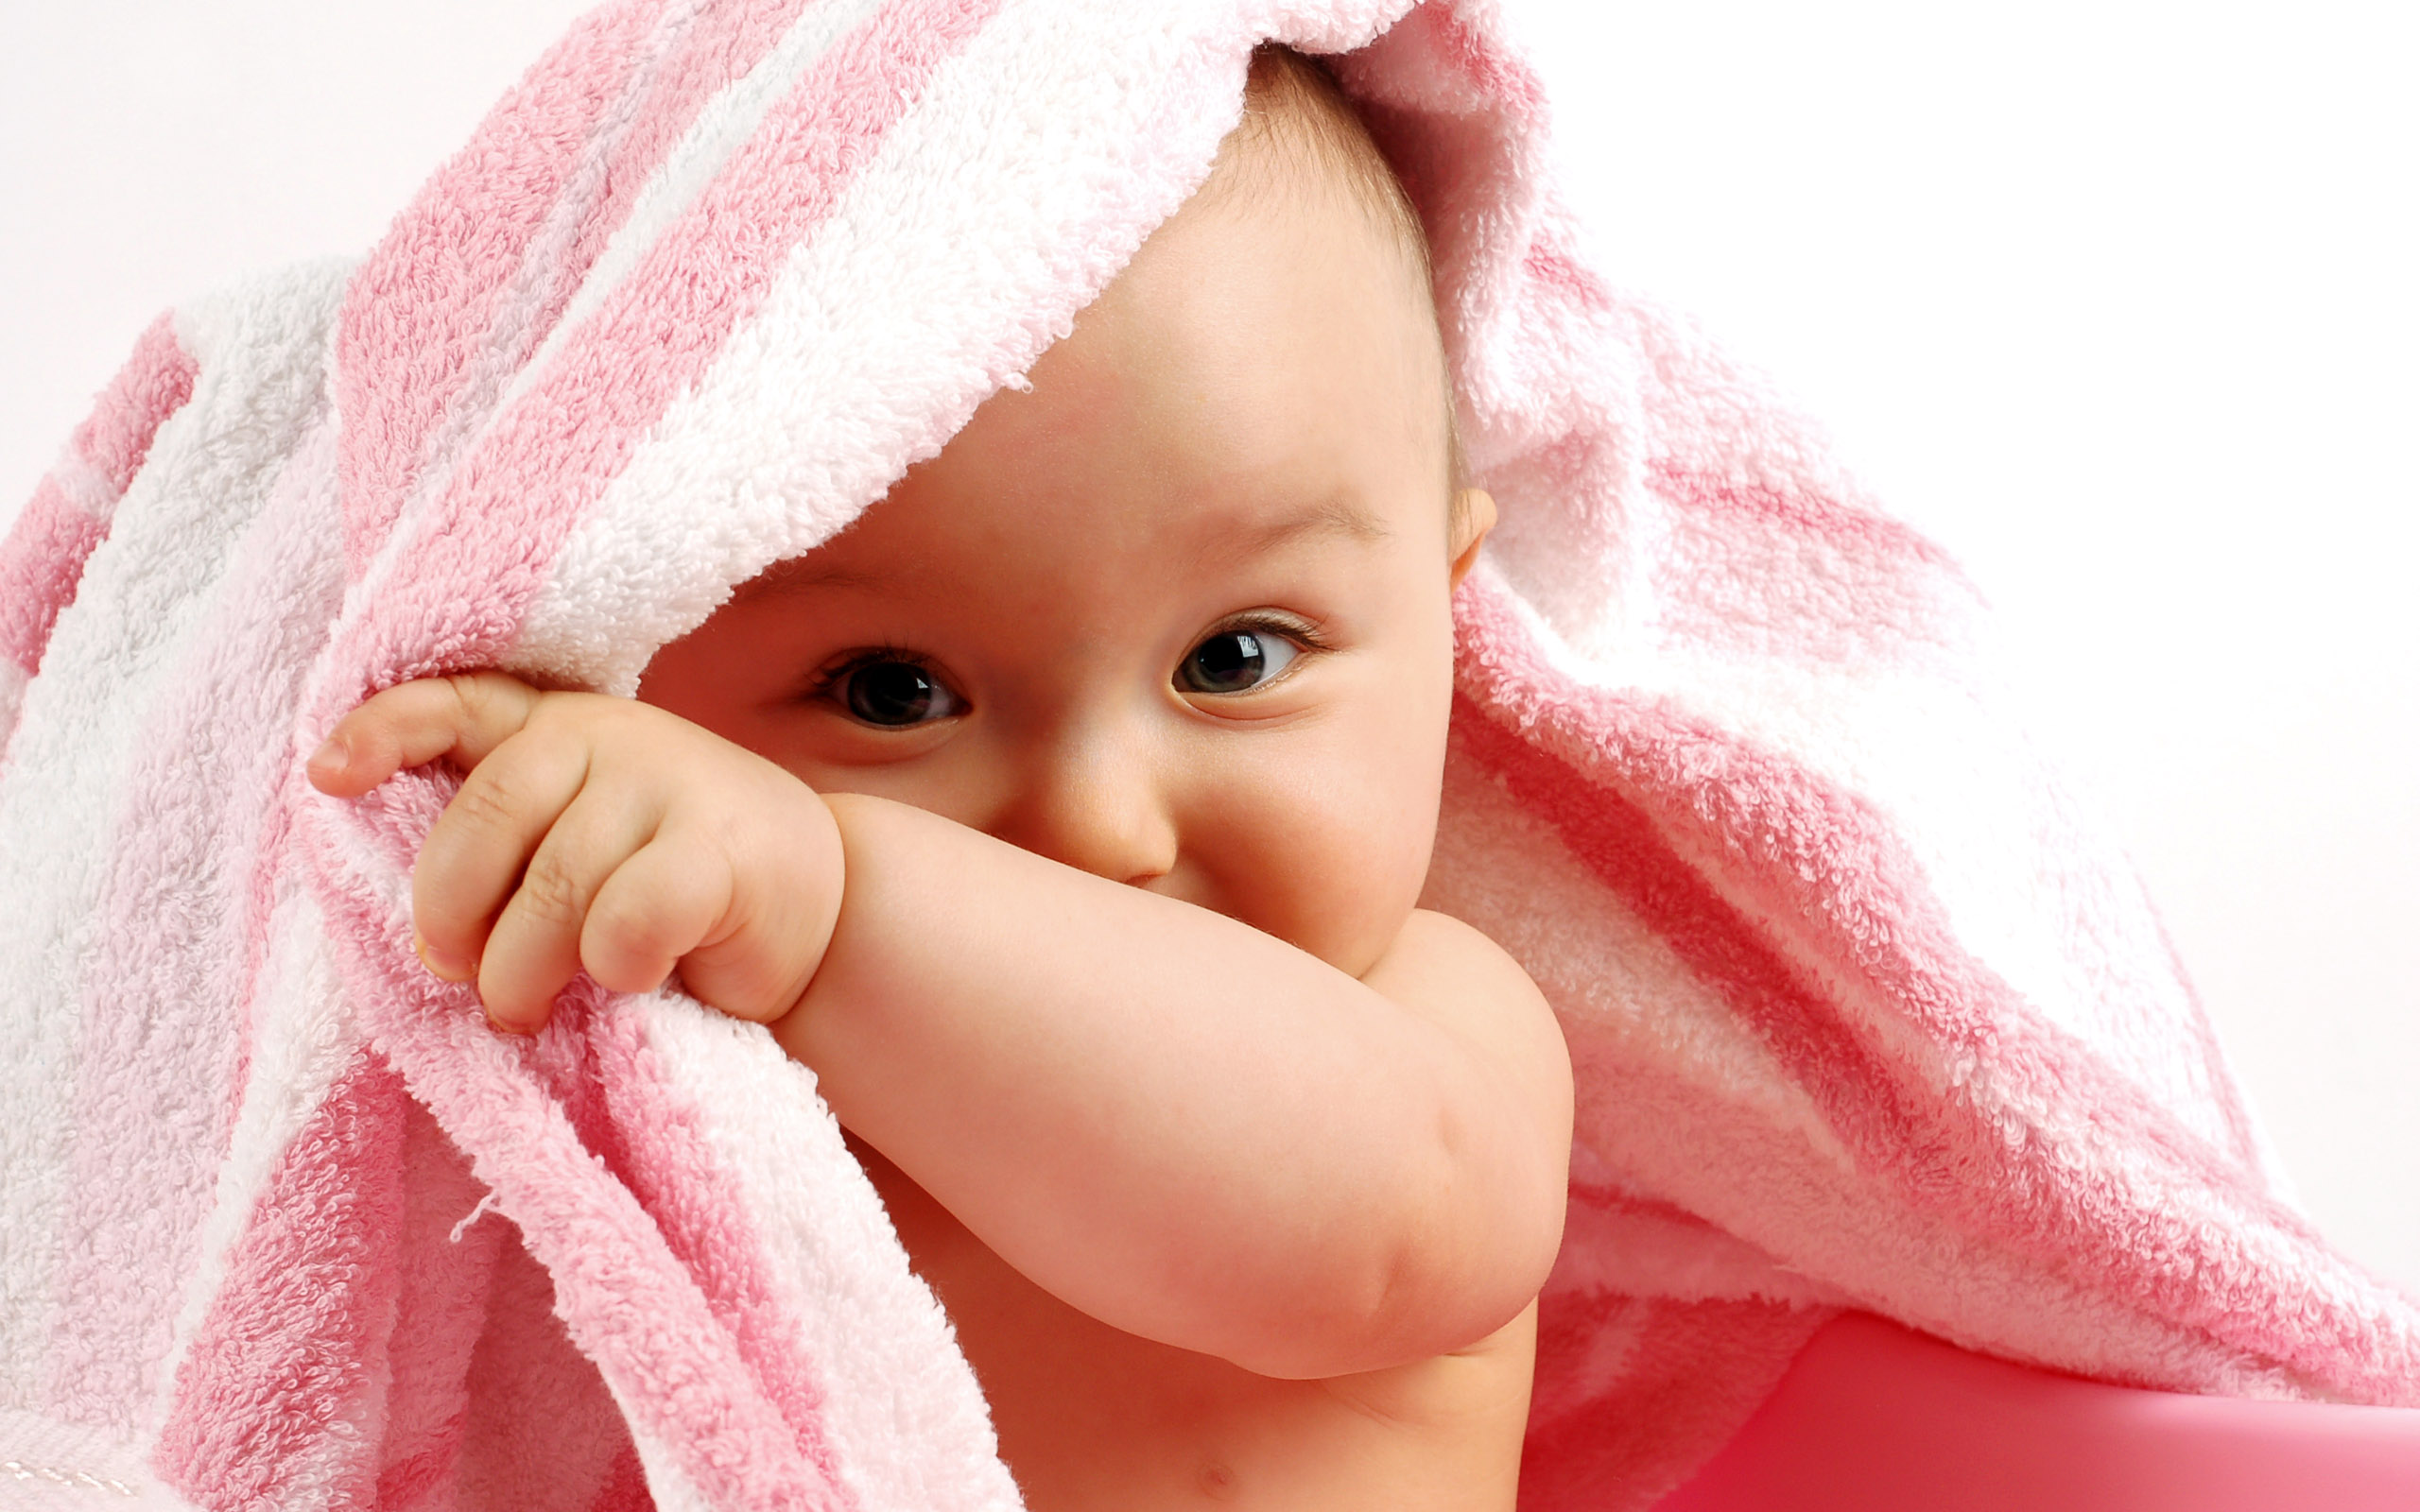 Wallpaper Baby Boy Love : cute Baby Boy 2 Facebook covers Wallpapers HD